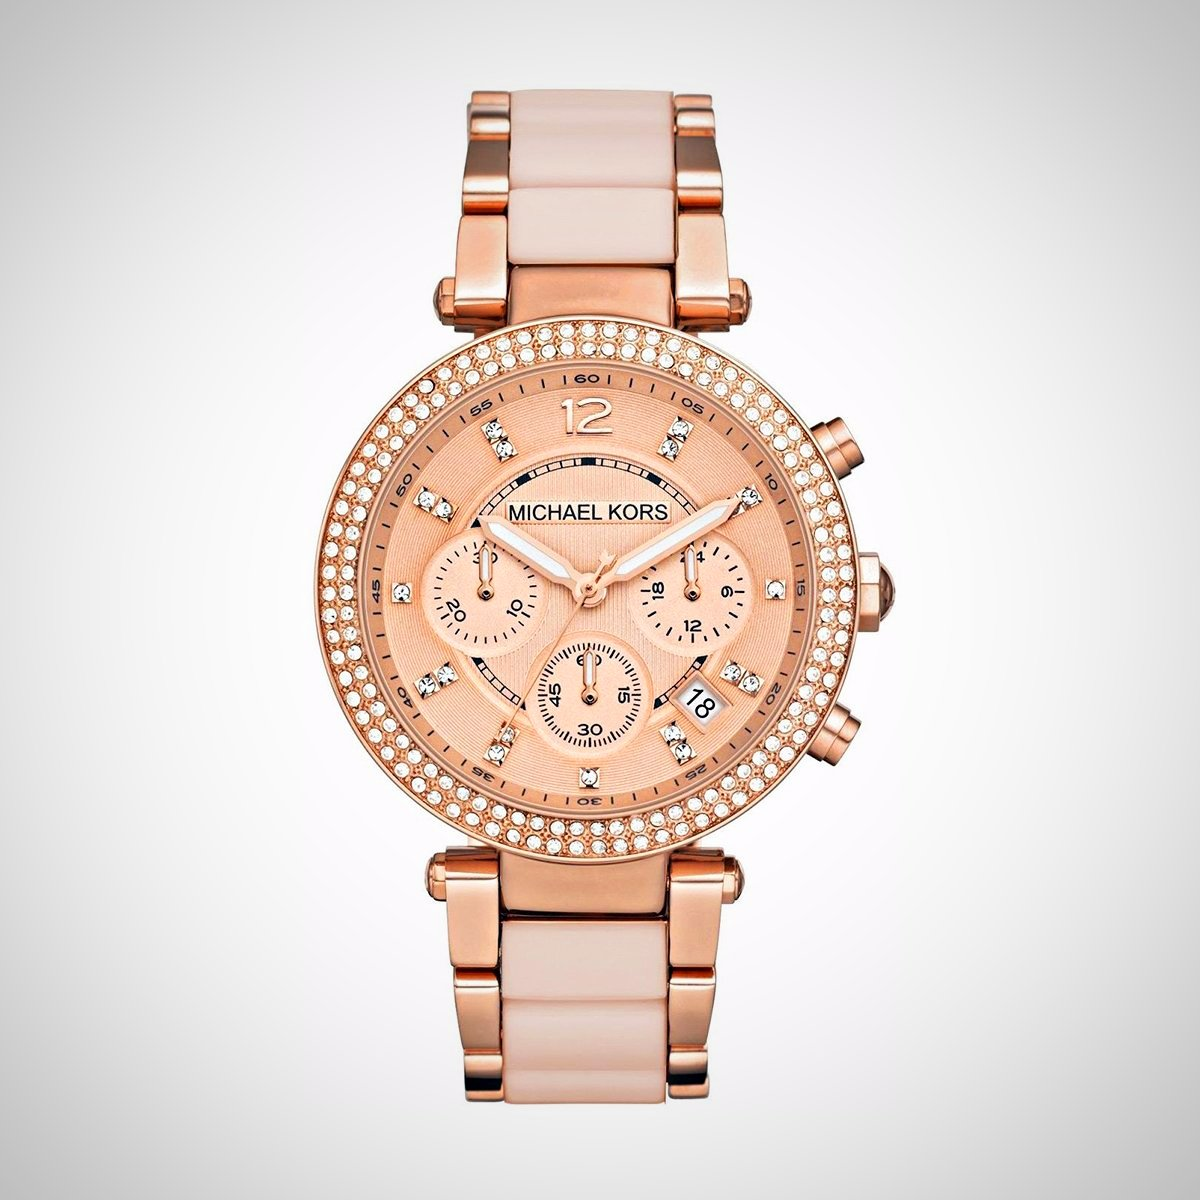 Michael Kors MK5896 Parker Chronograph Ladies Watch